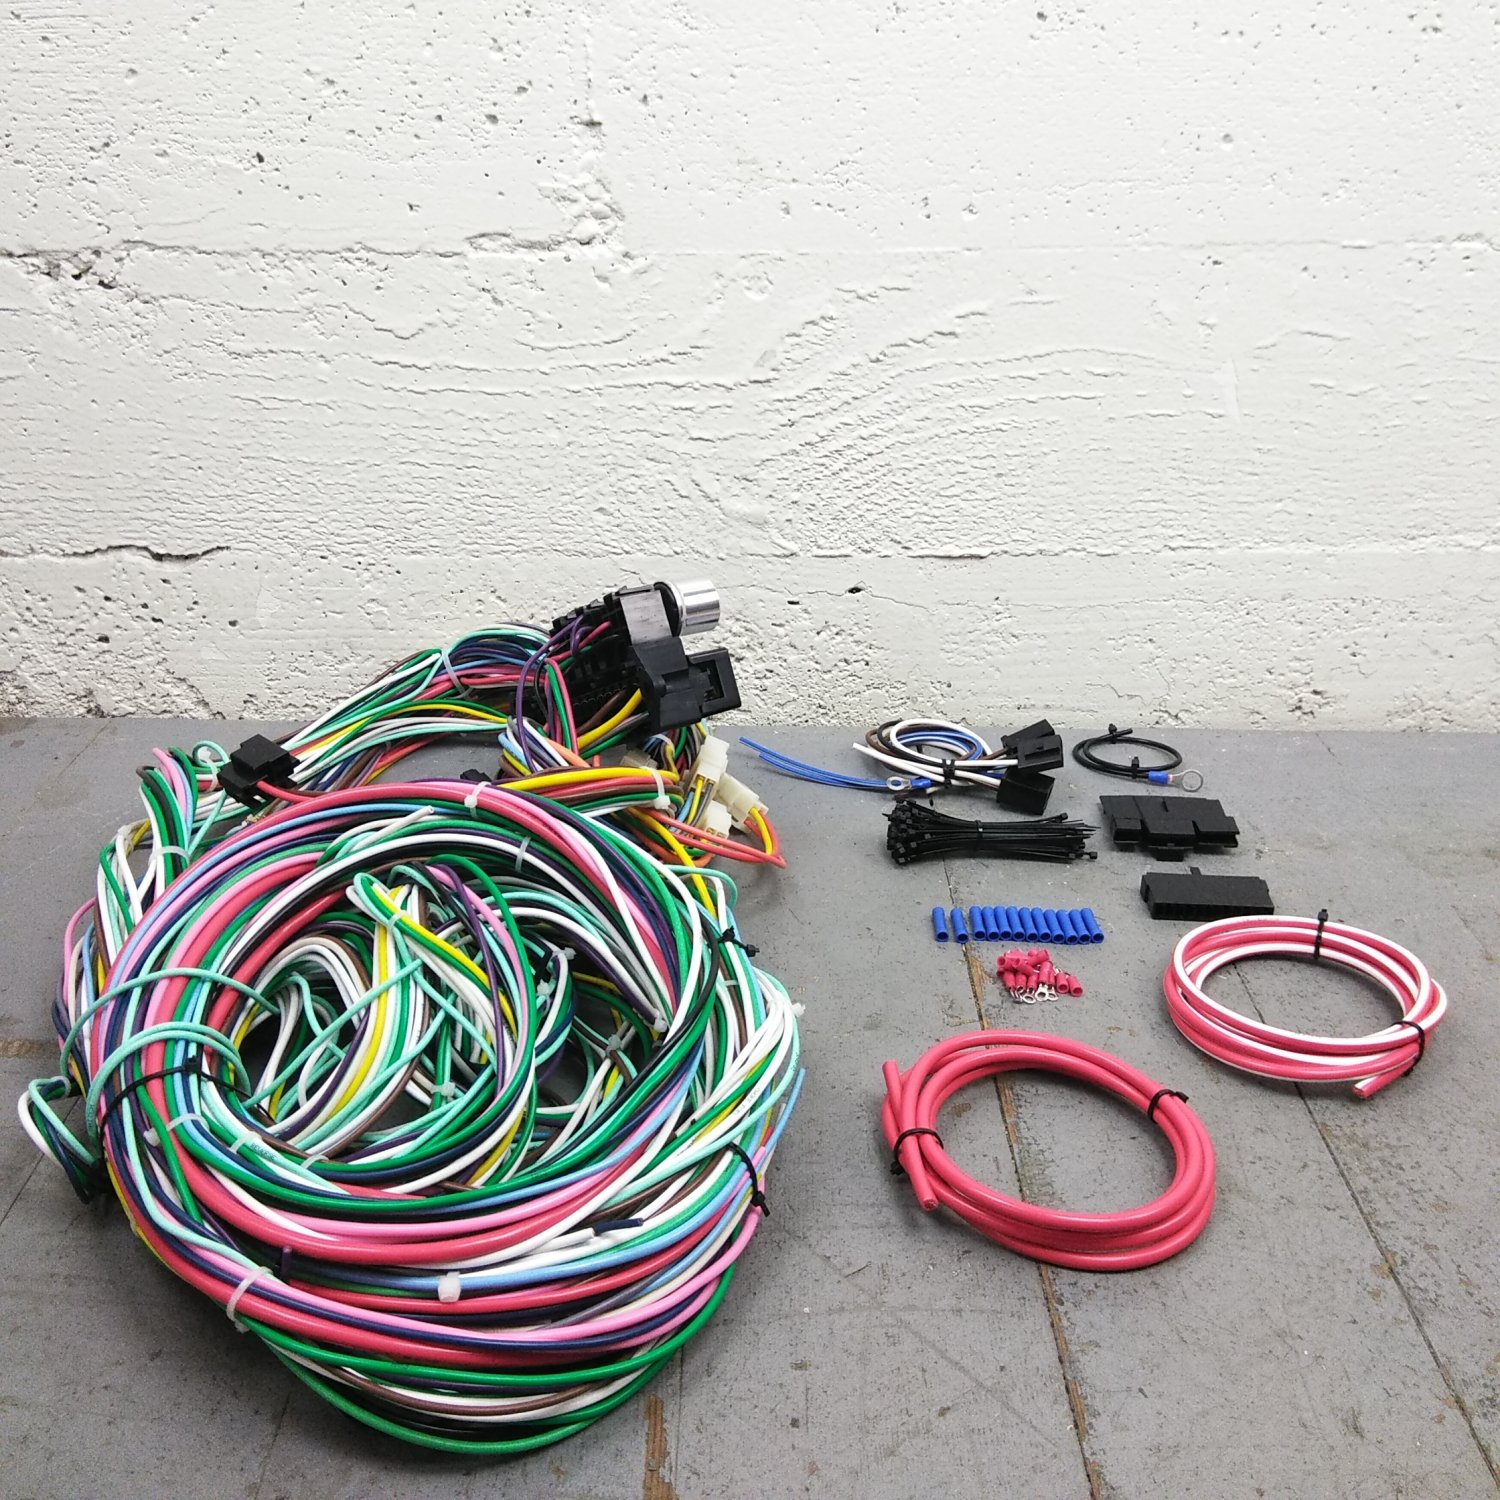 1960 - 1965 Ford Falcon Wire Harness Upgrade Kit fits painless circuit  compact. Bar_Product_Description_C